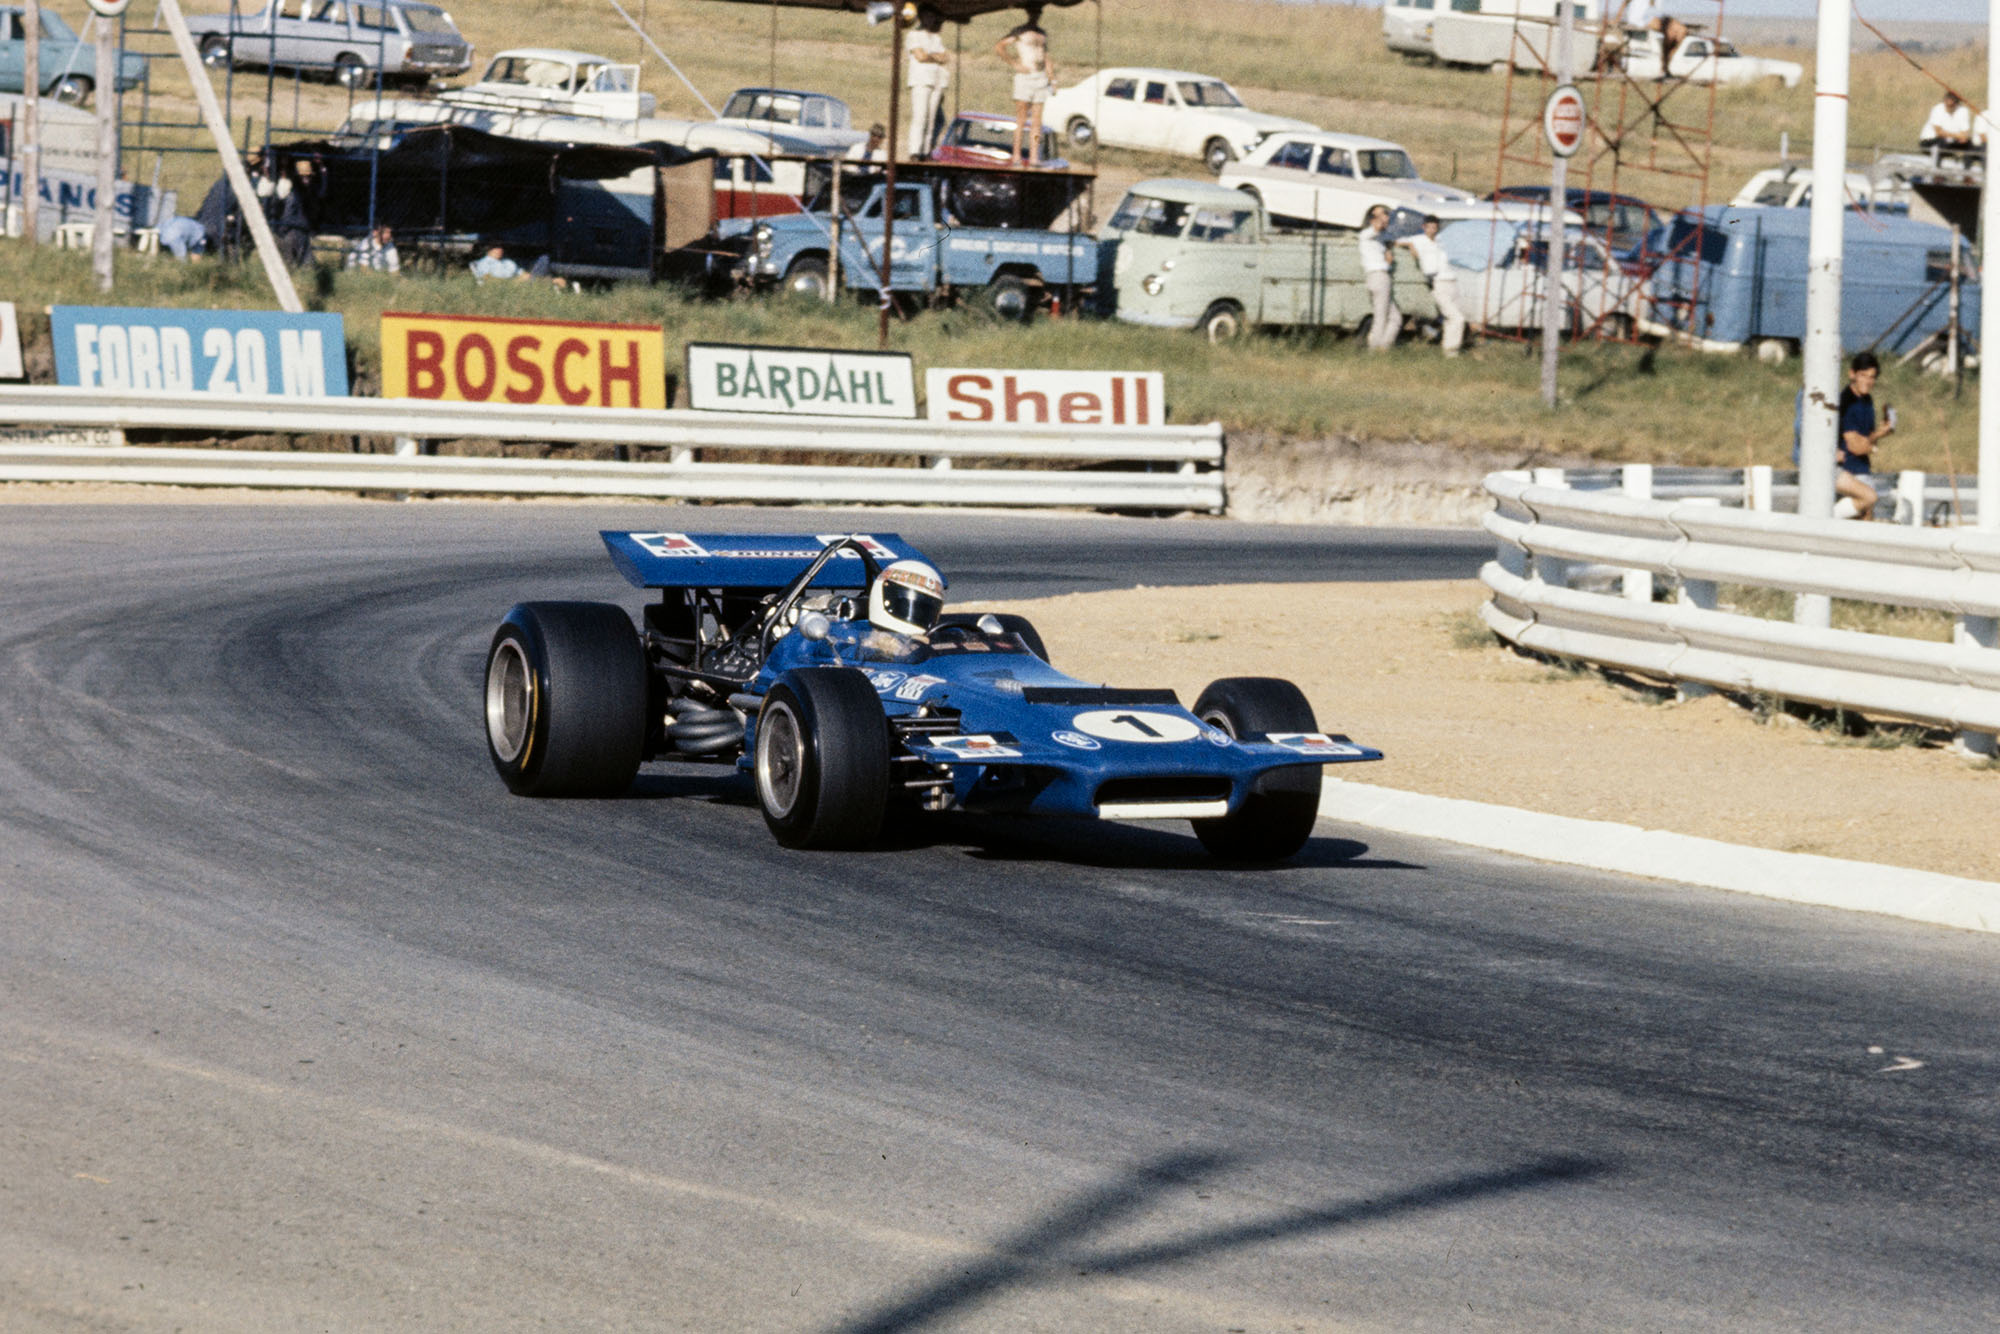 Jackie Stewart driving his Tyrrell March at the 1970 South African Grand Prix.